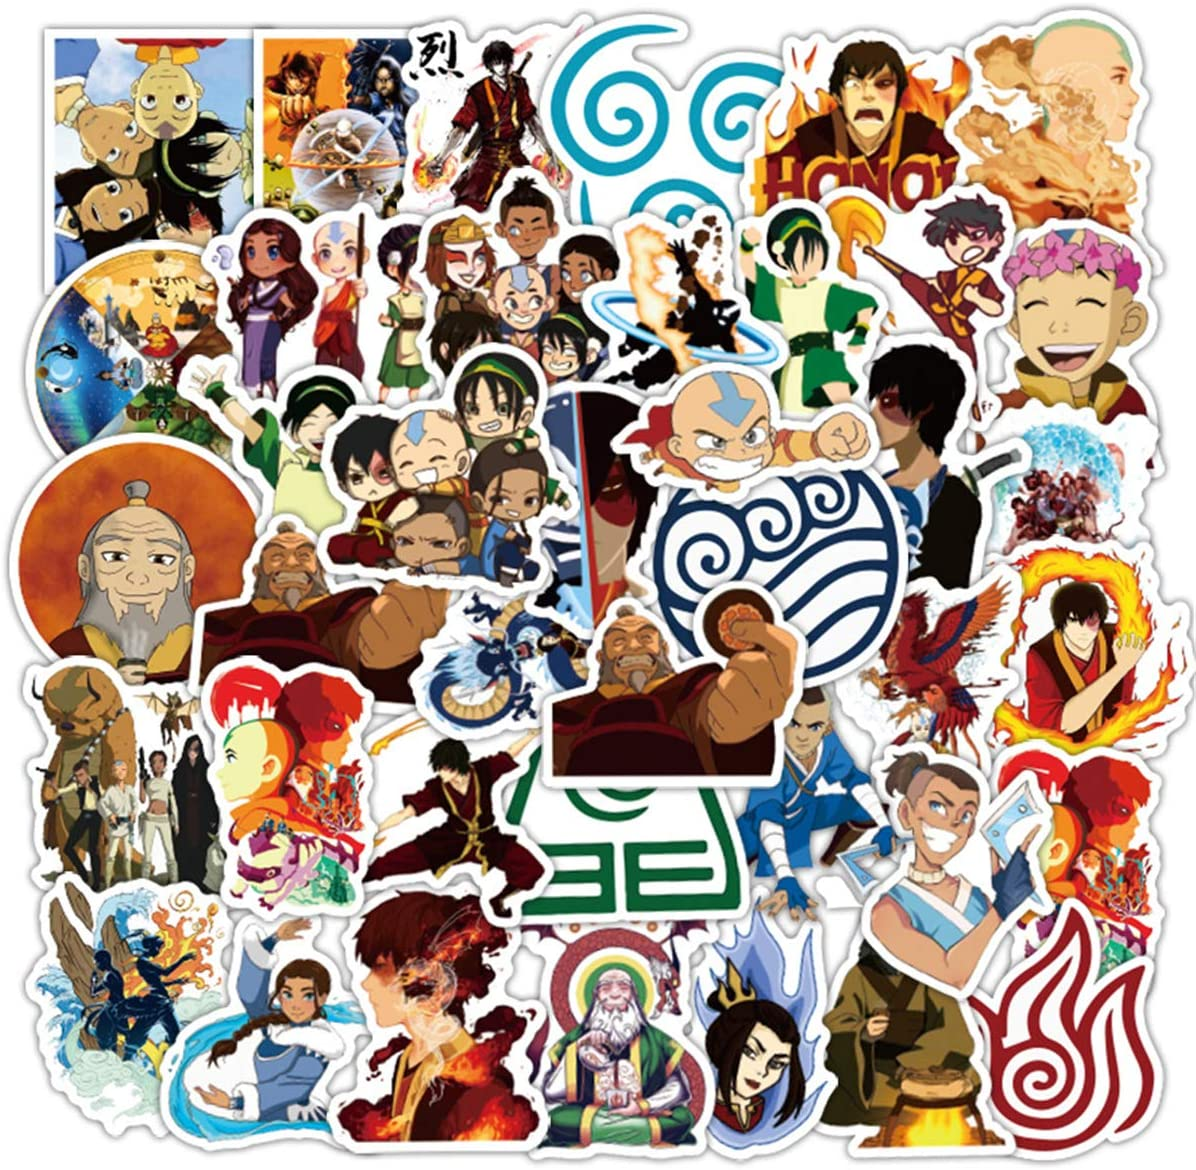 The Avatar Stickers/Decals (50 pcs) for Laptop Skateboard Snowboard Water Bottle Phone Car Bicycle Luggage Guitar Computer as Gift(Avatar)